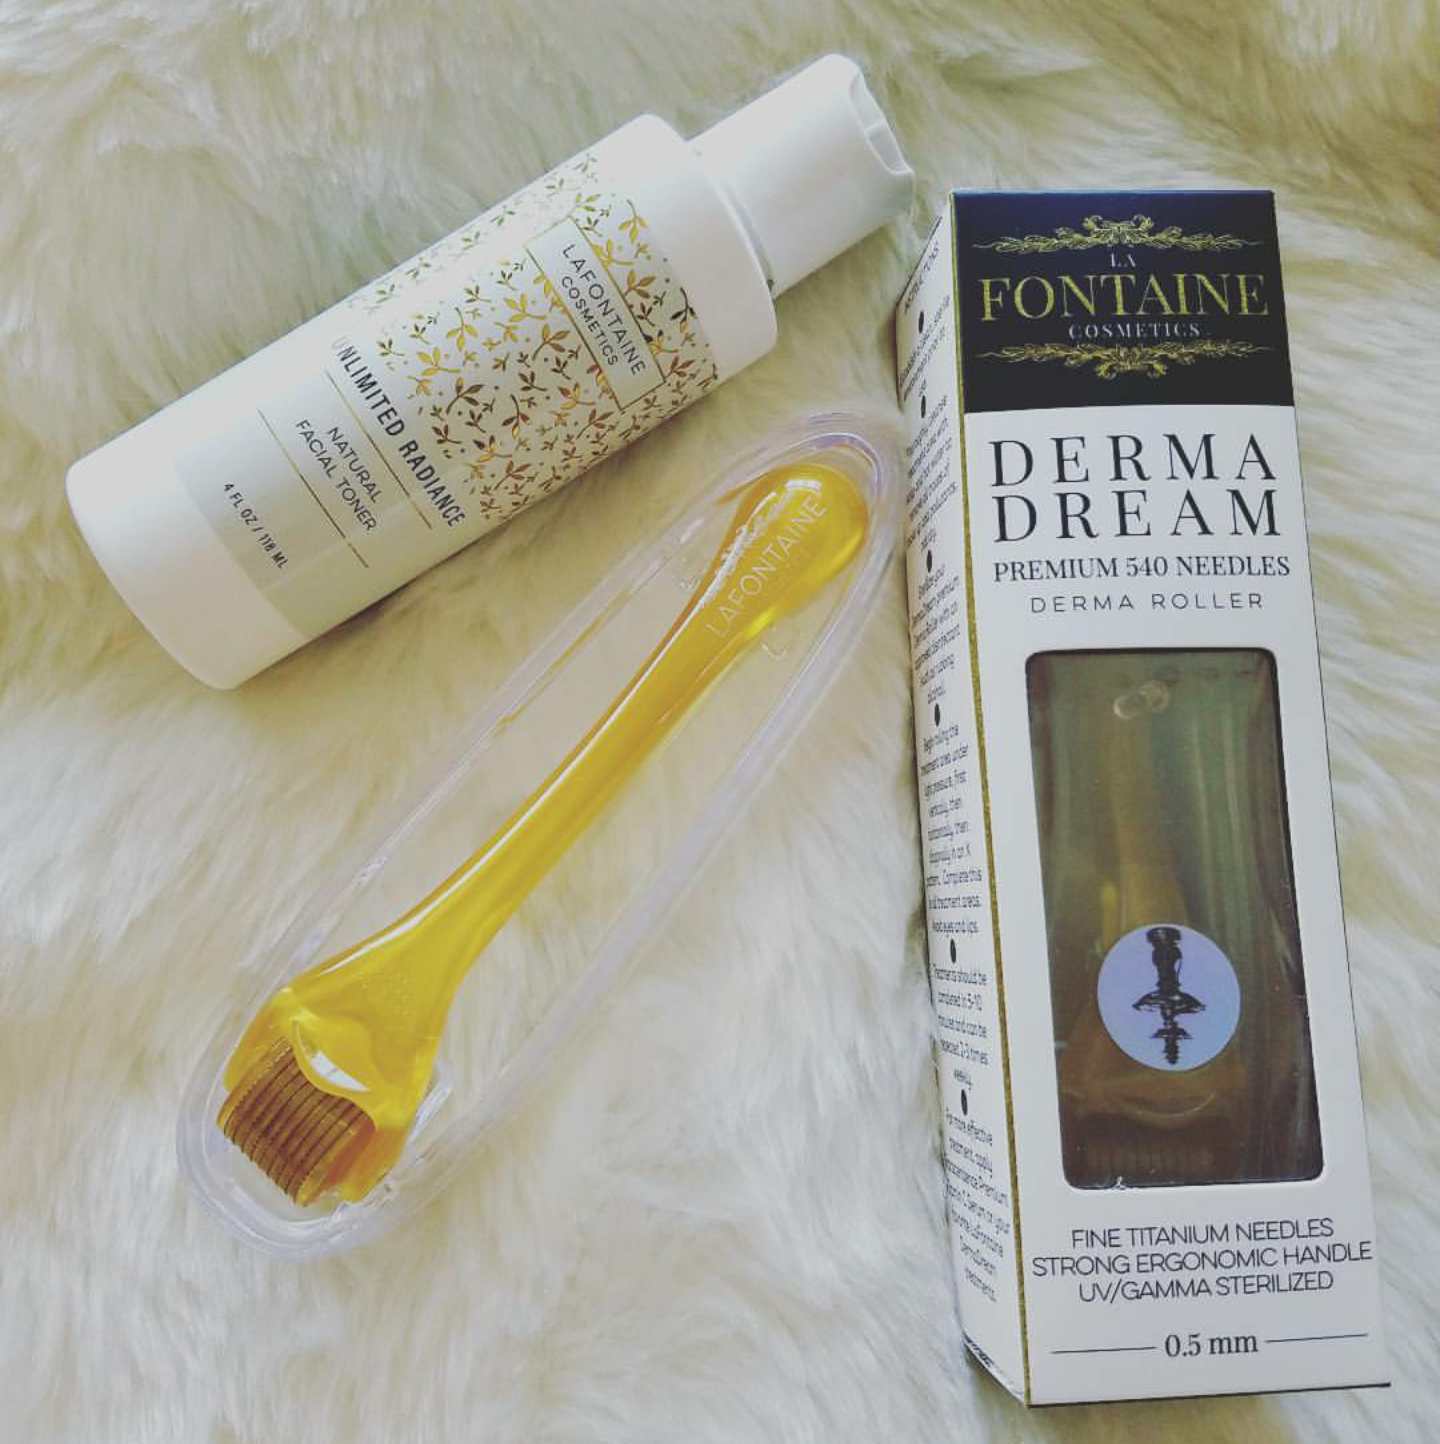 Bluelillypad Blog Archive La Fontaine Cosmetics Derma Roller Zam Glow Skin Water For Toner With Loty Mcclain